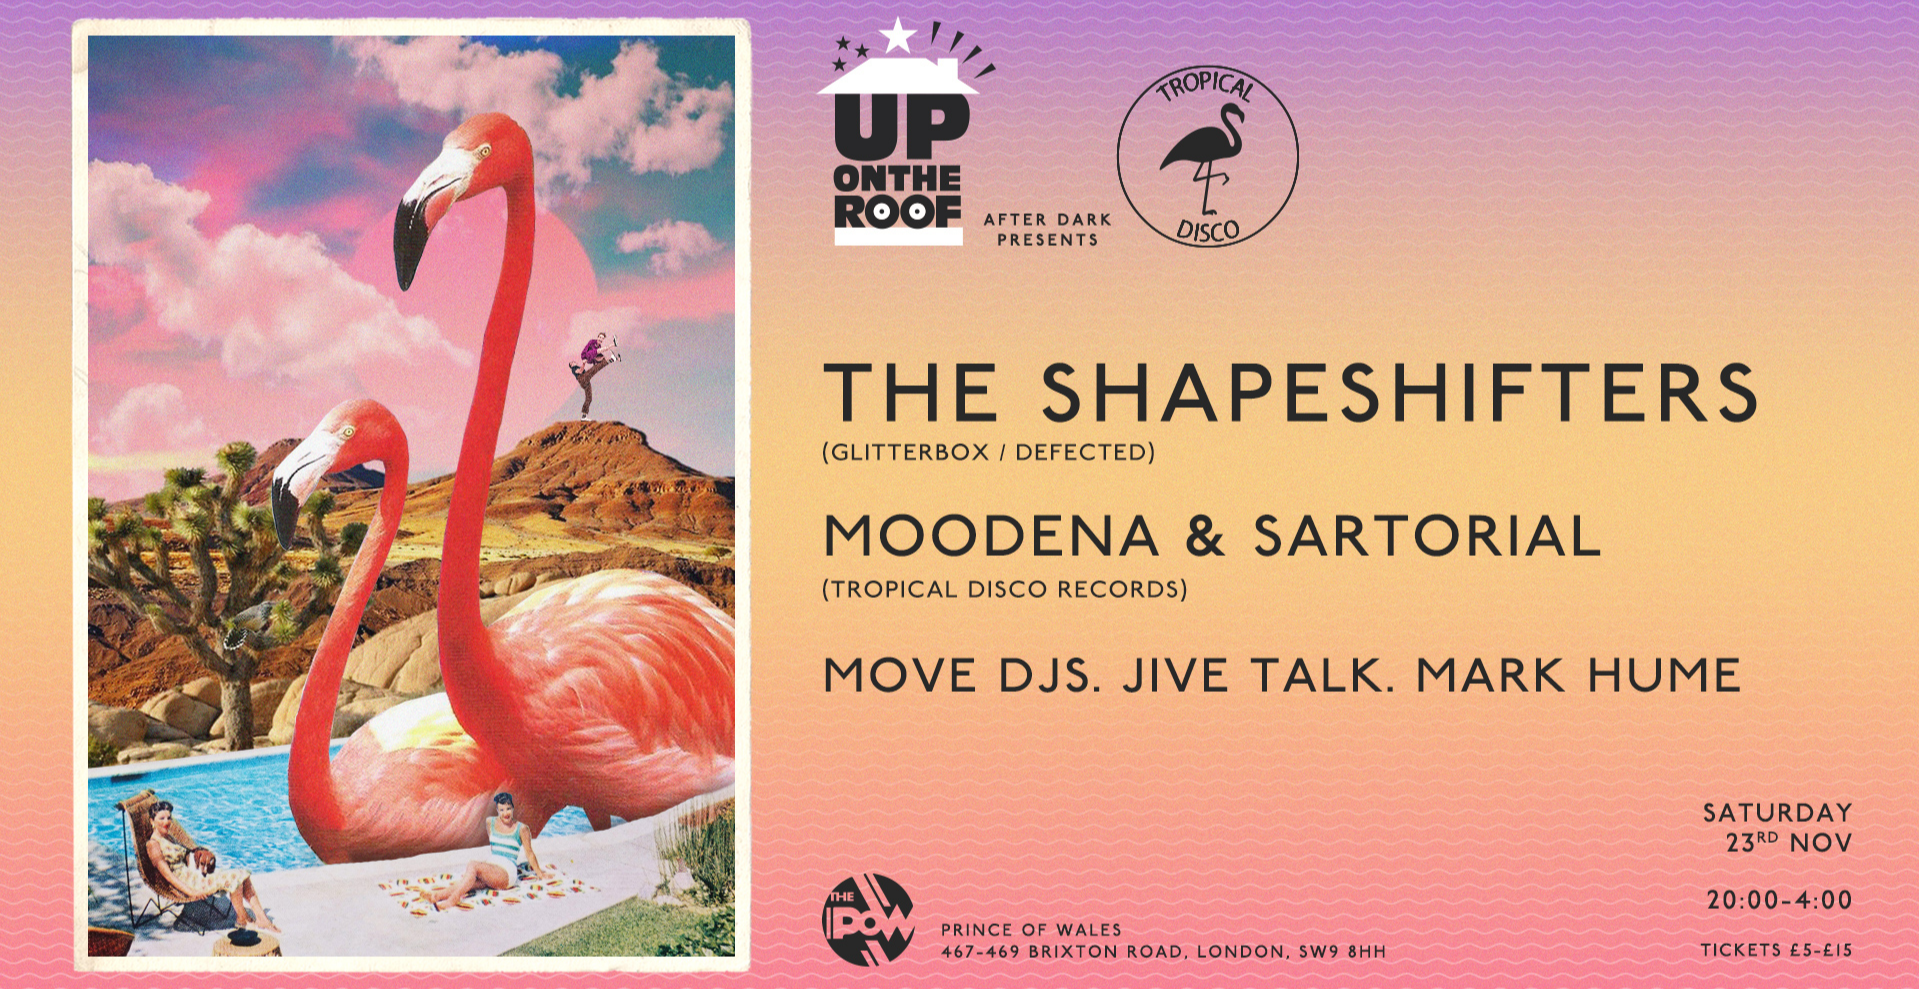 Up On The Roof x Tropical Disco Records with The Shapeshifters